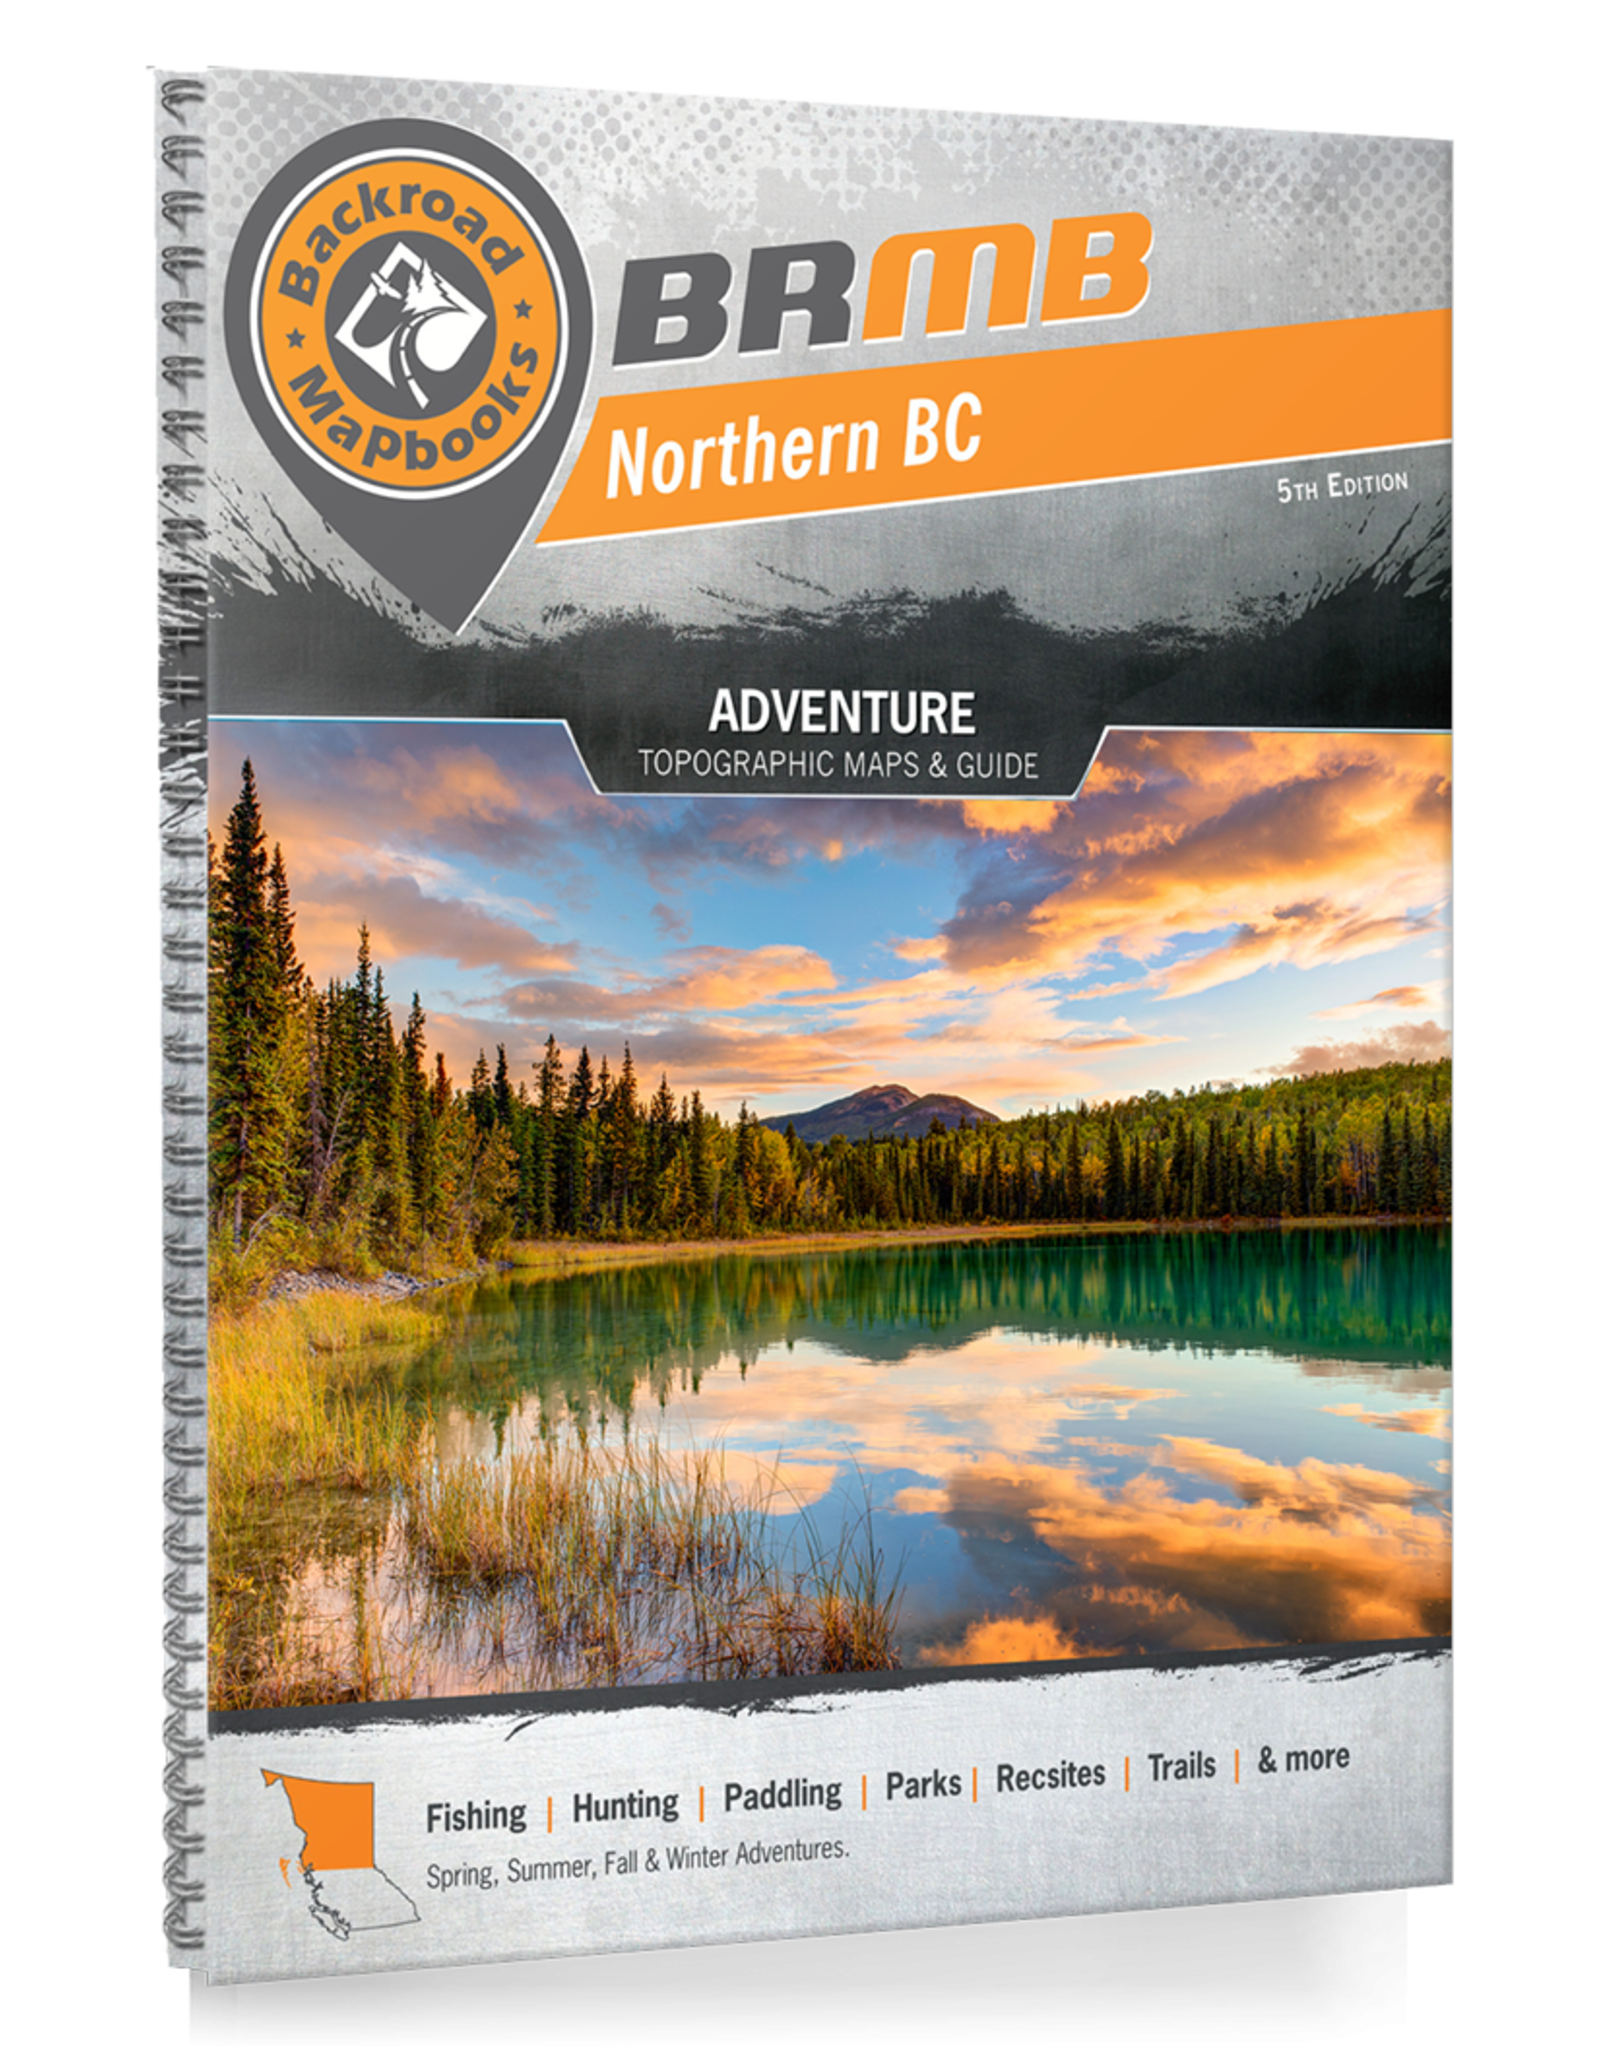 BACKROAD MAPBOOKS BRMB - NORTHERN BC 5TH EDITION #NOBC